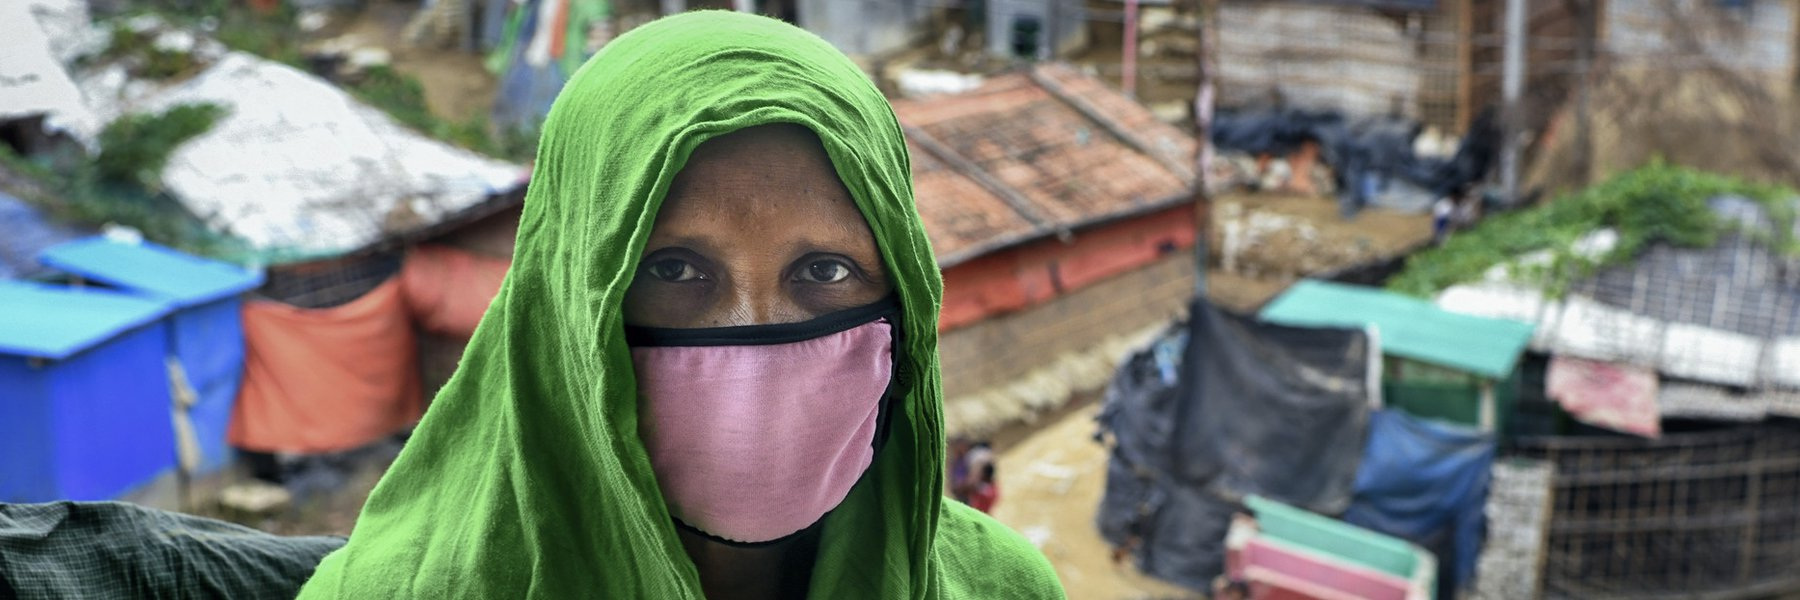 A woman wearing a pink facemask and green head scarf stands outside in a refugee camp in Bangladesh